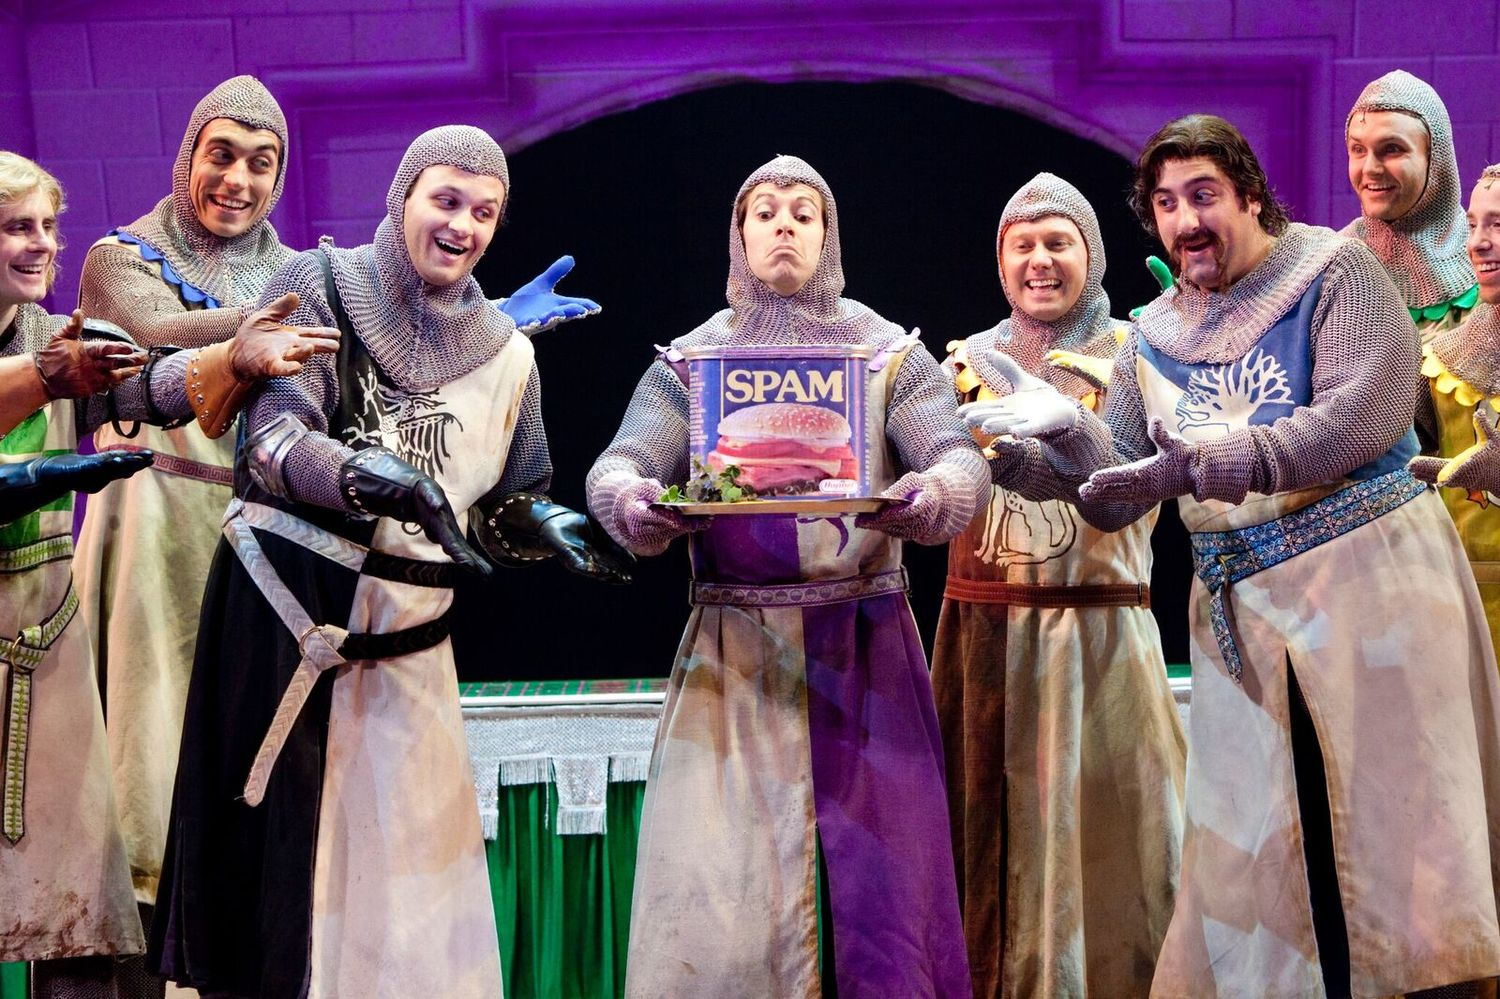 BWW Review: MONTY PYTHON'S SPAMALOT at Hershey Theatre